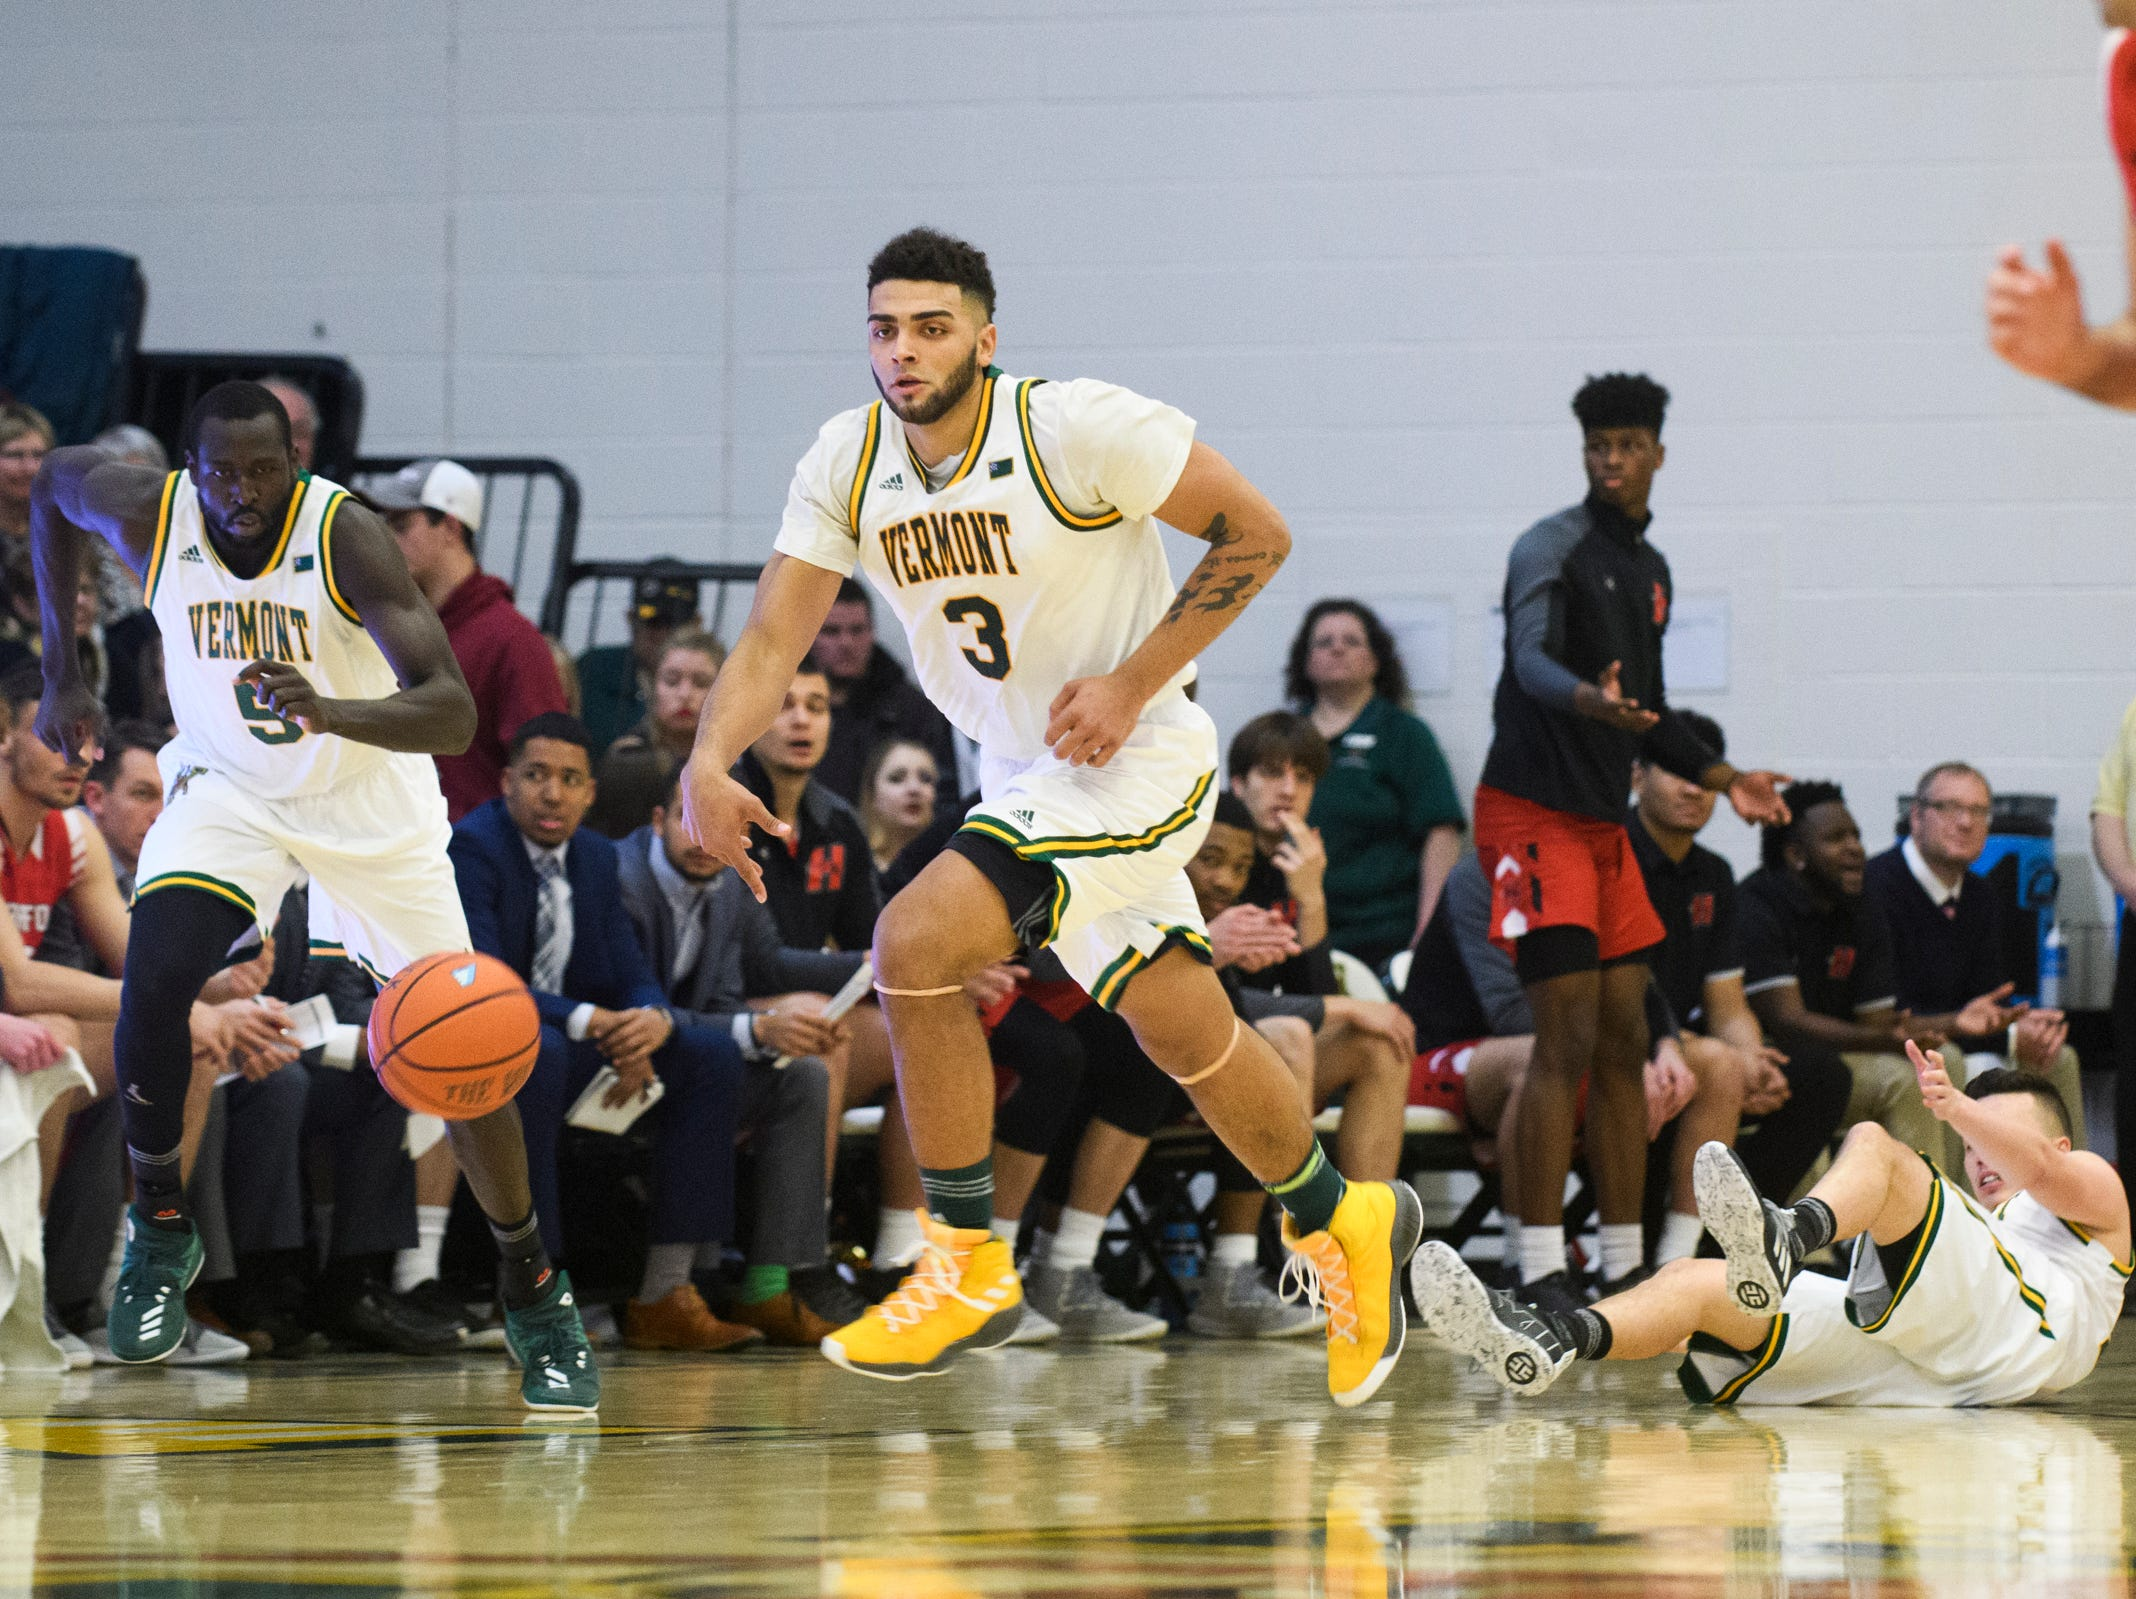 Vermont forward Anthony Lamb (3) dribbles the ball down the court during the men's basketball game between the Hartford Hawks and the Vermont Catamounts at Patrick Gym on Saturday night January 12, 2019 in Burlington.